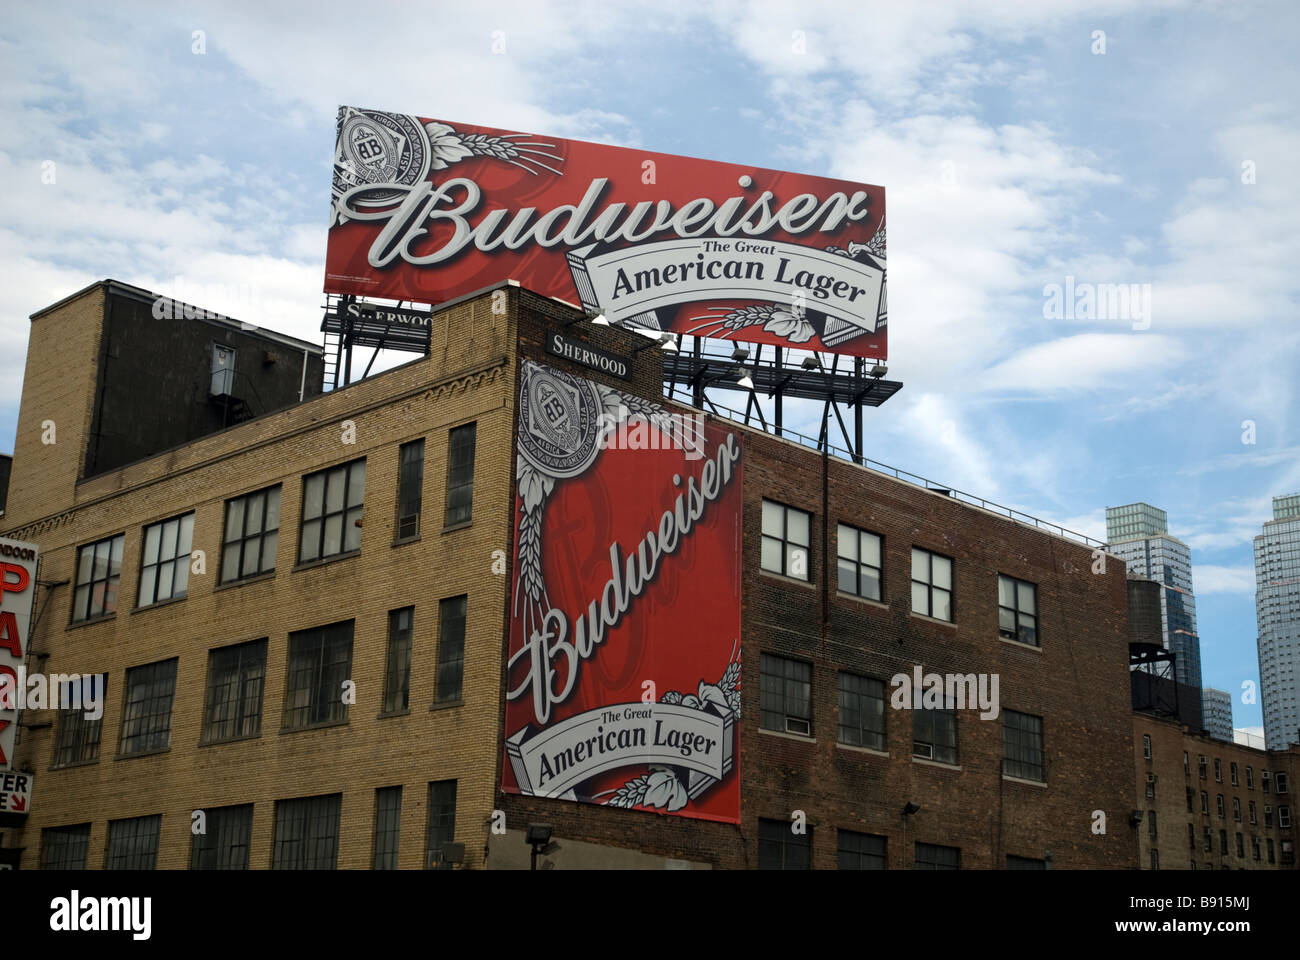 Billboards advertising Budweiser beer by the brewer Anheuser Busch in New York on Sunday March 8 2009 Richard B - Stock Image